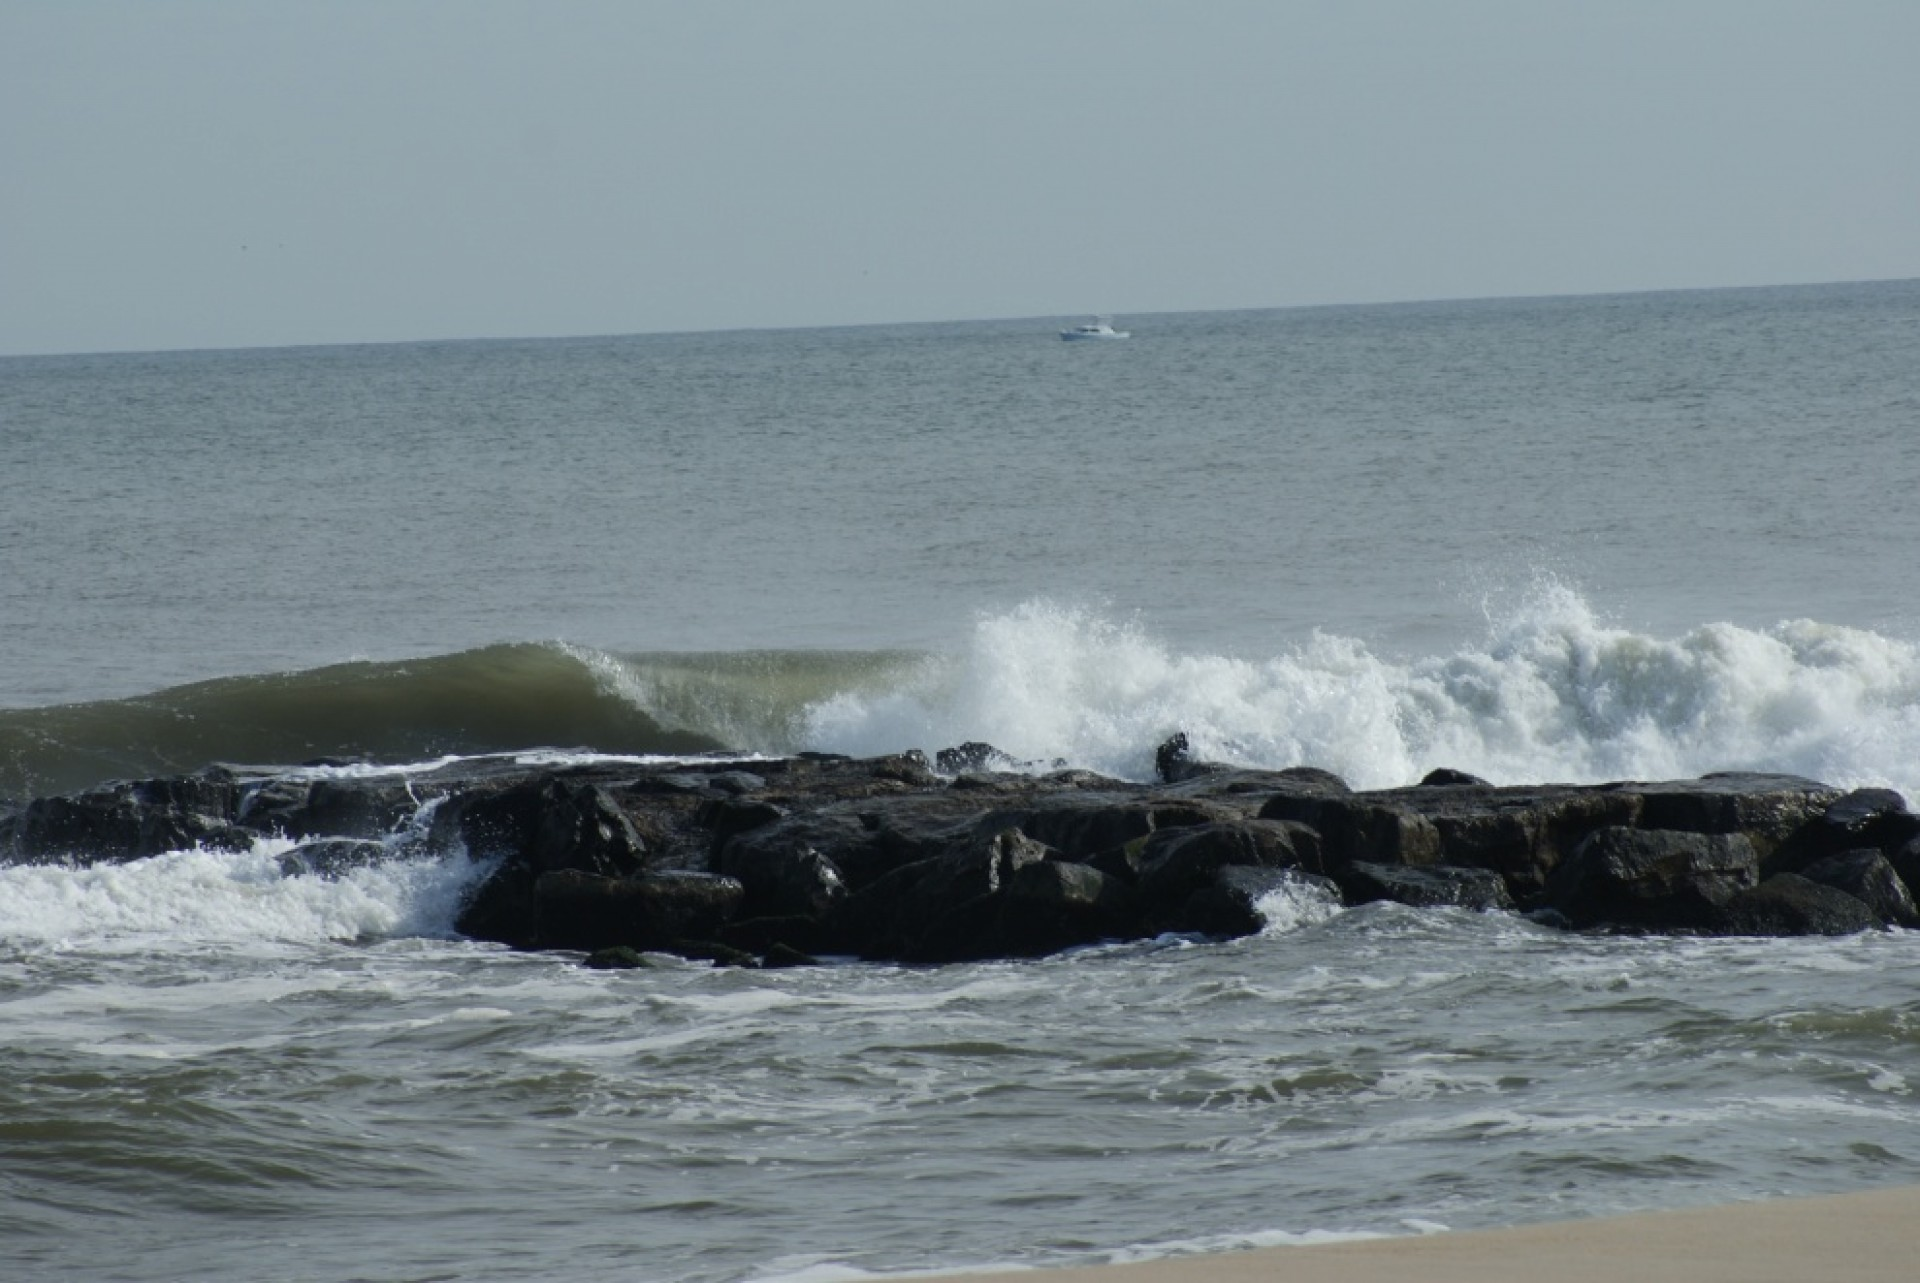 SurfinNJ's photo of Manasquan